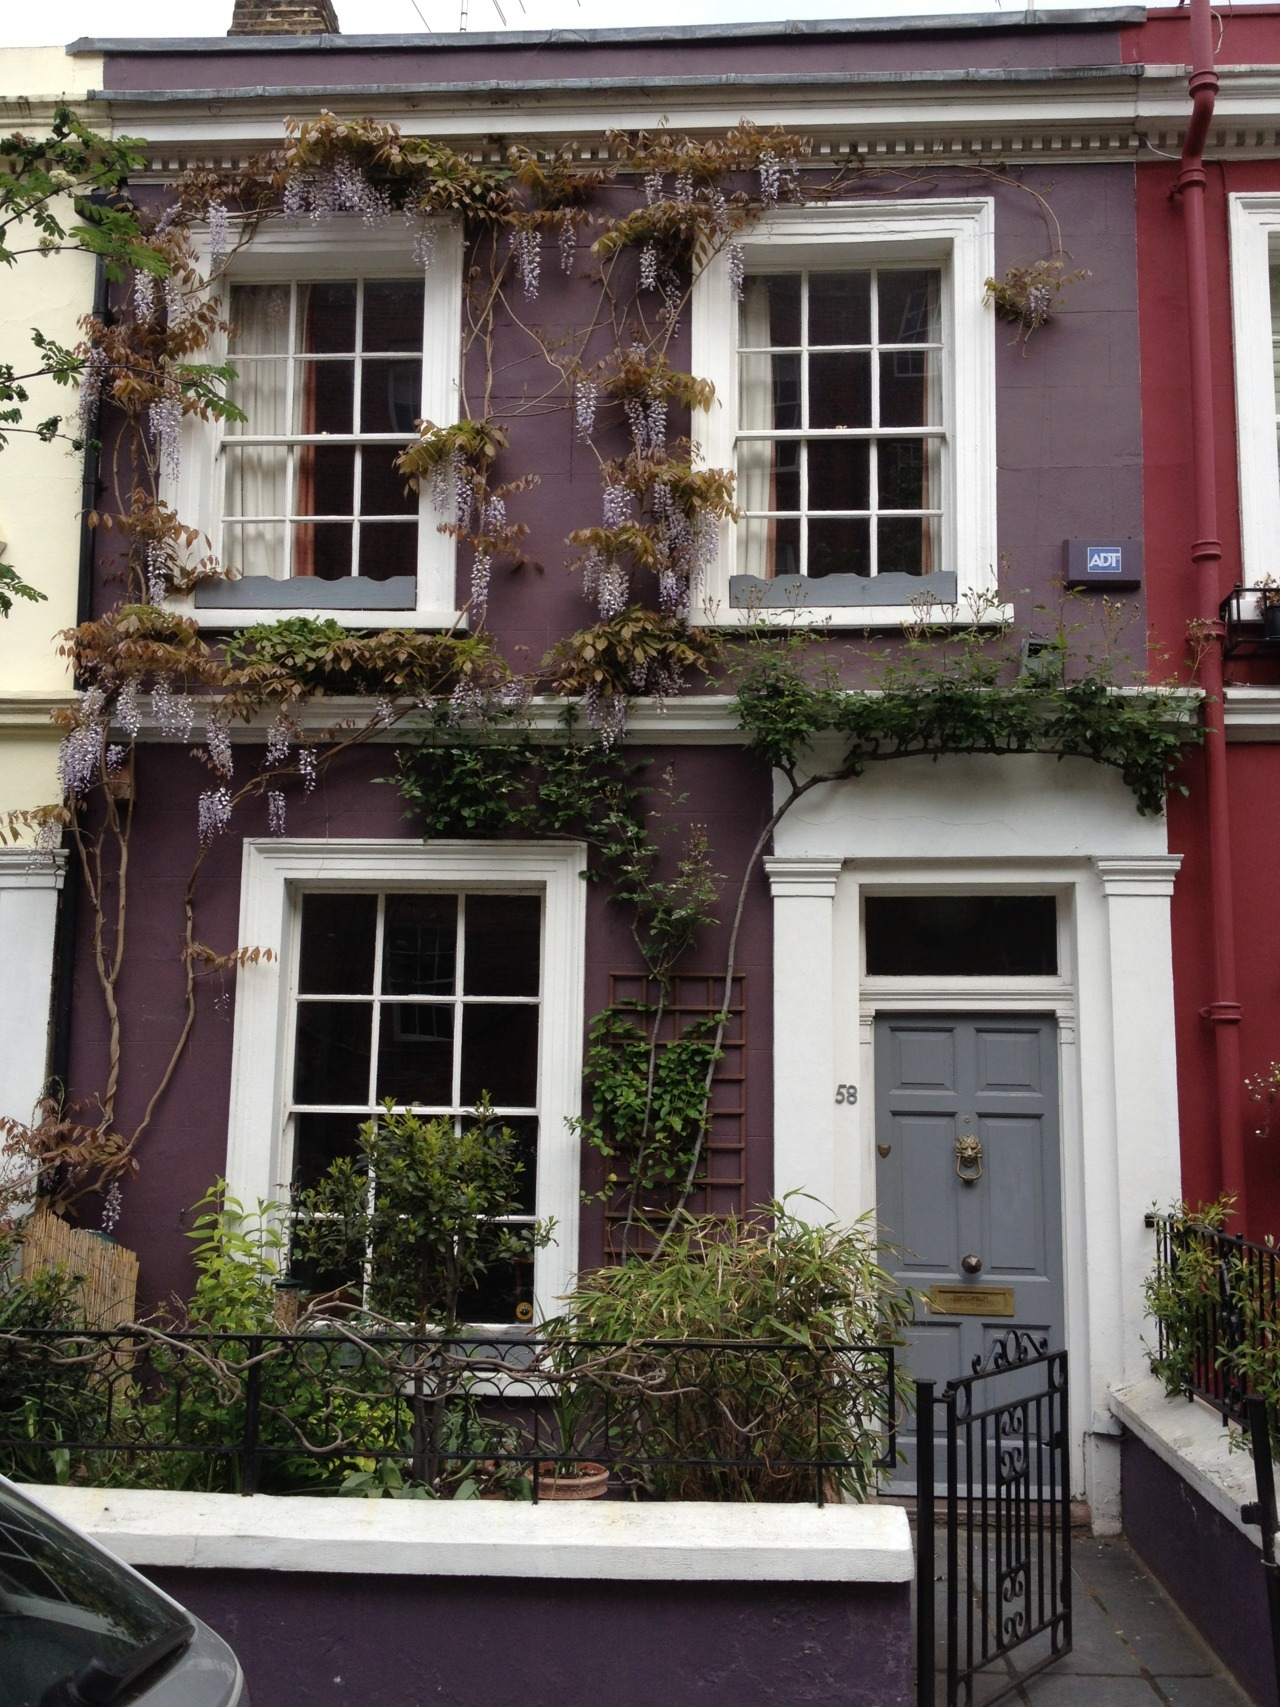 Saw this house in Portobello Road yesterday - there was something about it that struck me and I had to stop and admire the harmony going on here. Everything about this house feels at peace, the house looks so cosy. The warm purple and the flowers draping on the front, as well as the subtle grey of the front door and windows - all fit perfectly with the symmetrical design of the house. Basically I love this house-front, from colors to architecture! I can only imagine how beautiful it must be inside…